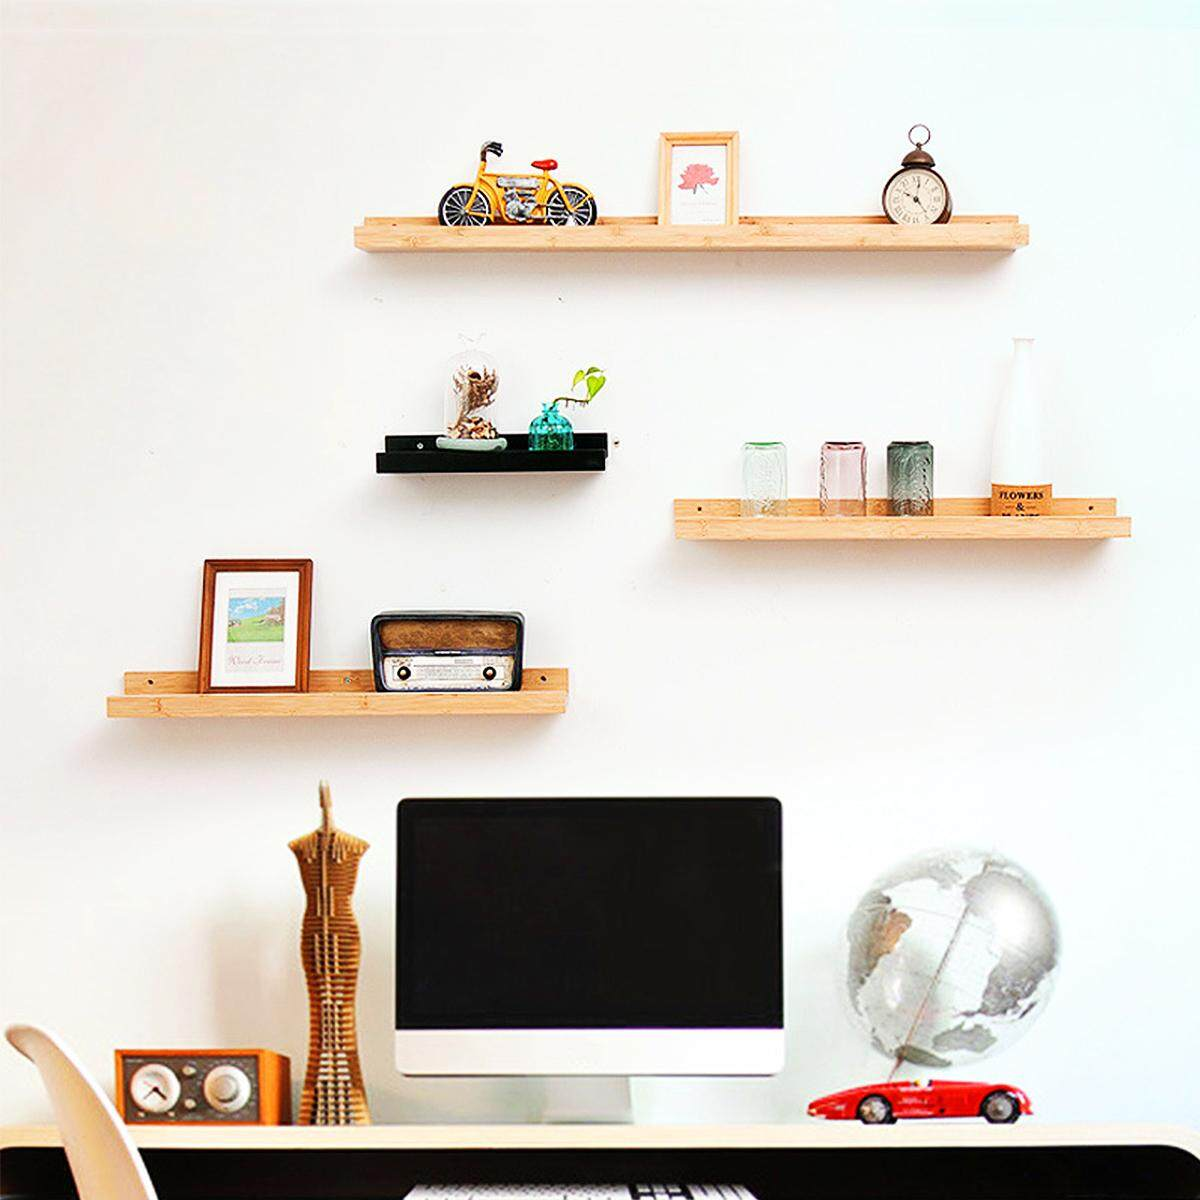 Vintage Retro Bamboo Wooden Wall Floating Shelf Storage Shelving Home Decor[65*12*5cm]